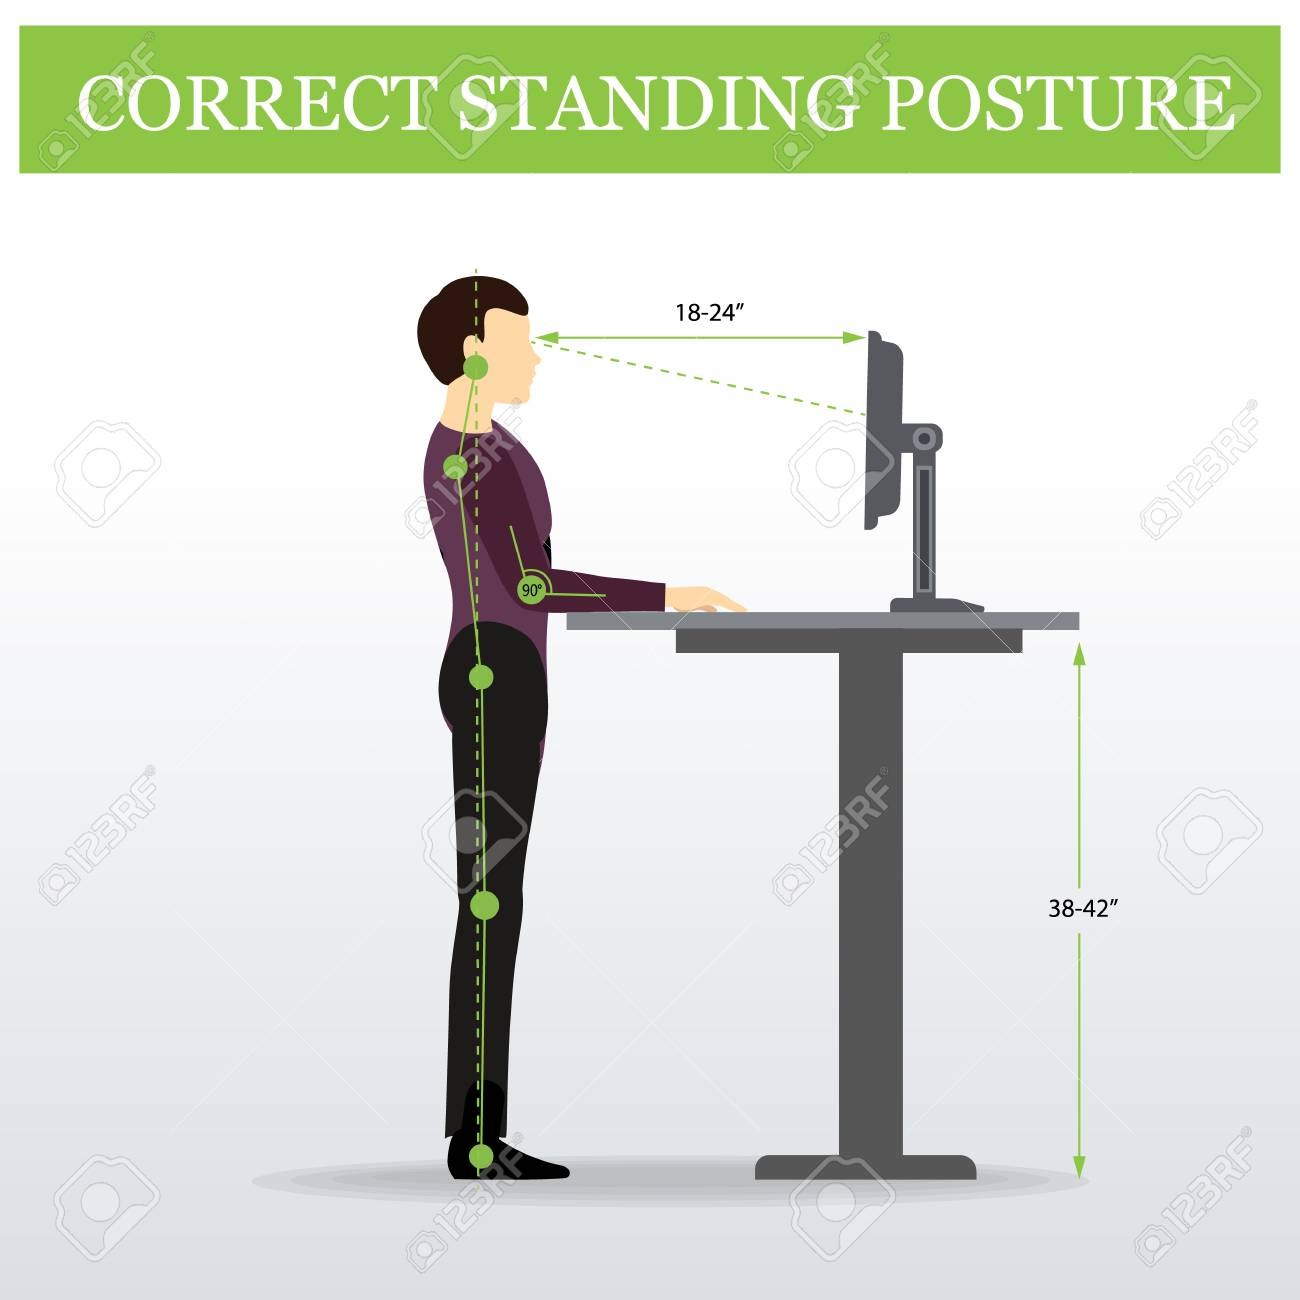 Correct Standing Posture On Height Adjustable Desk Or Table Sitting And  Standing Pose Of